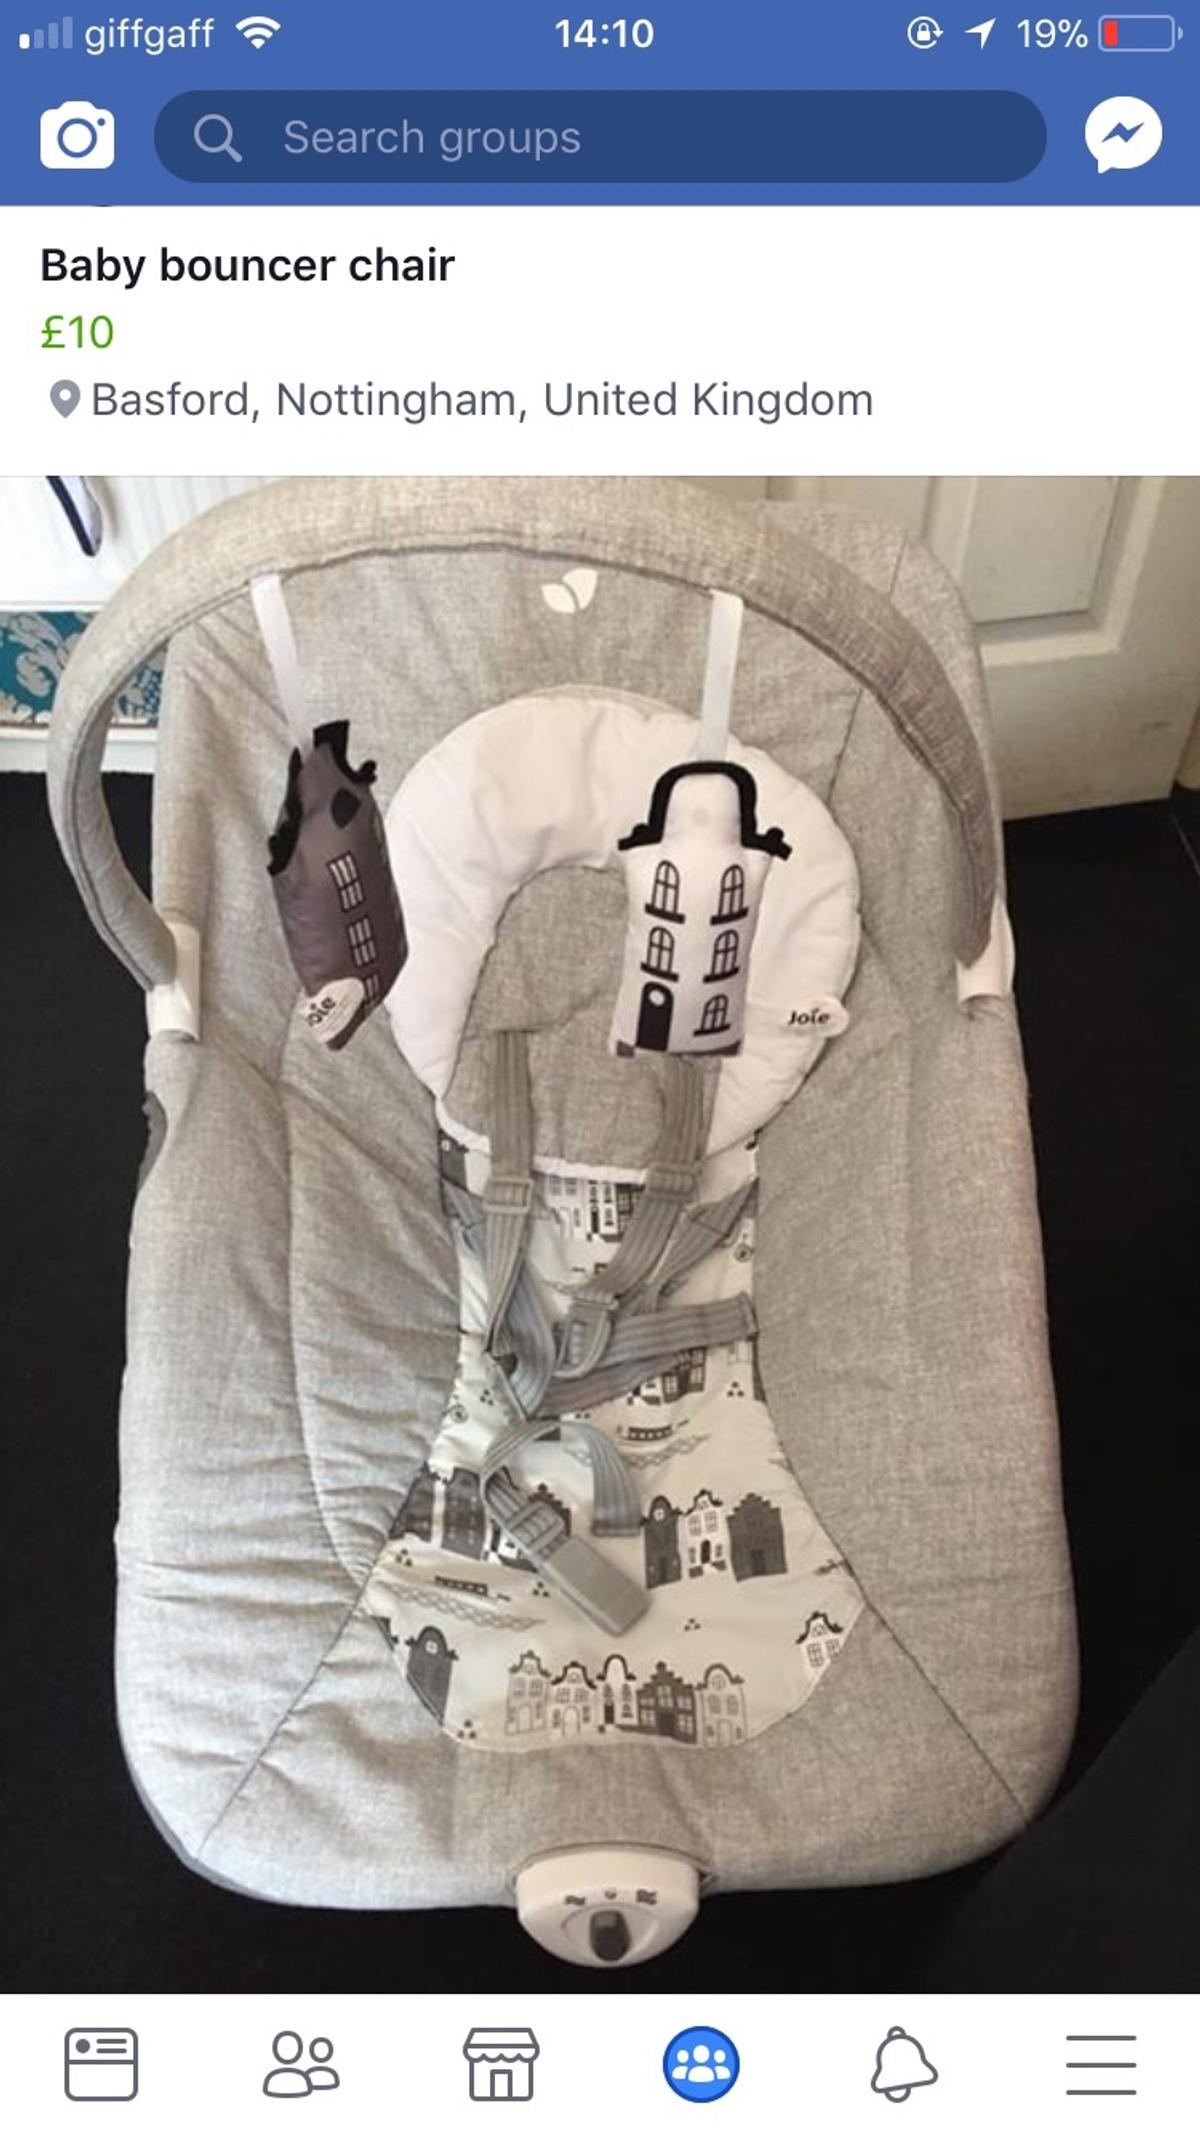 ce9630e7bcf Baby bouncer chair in NG5 Nottingham for £10.00 for sale - Shpock